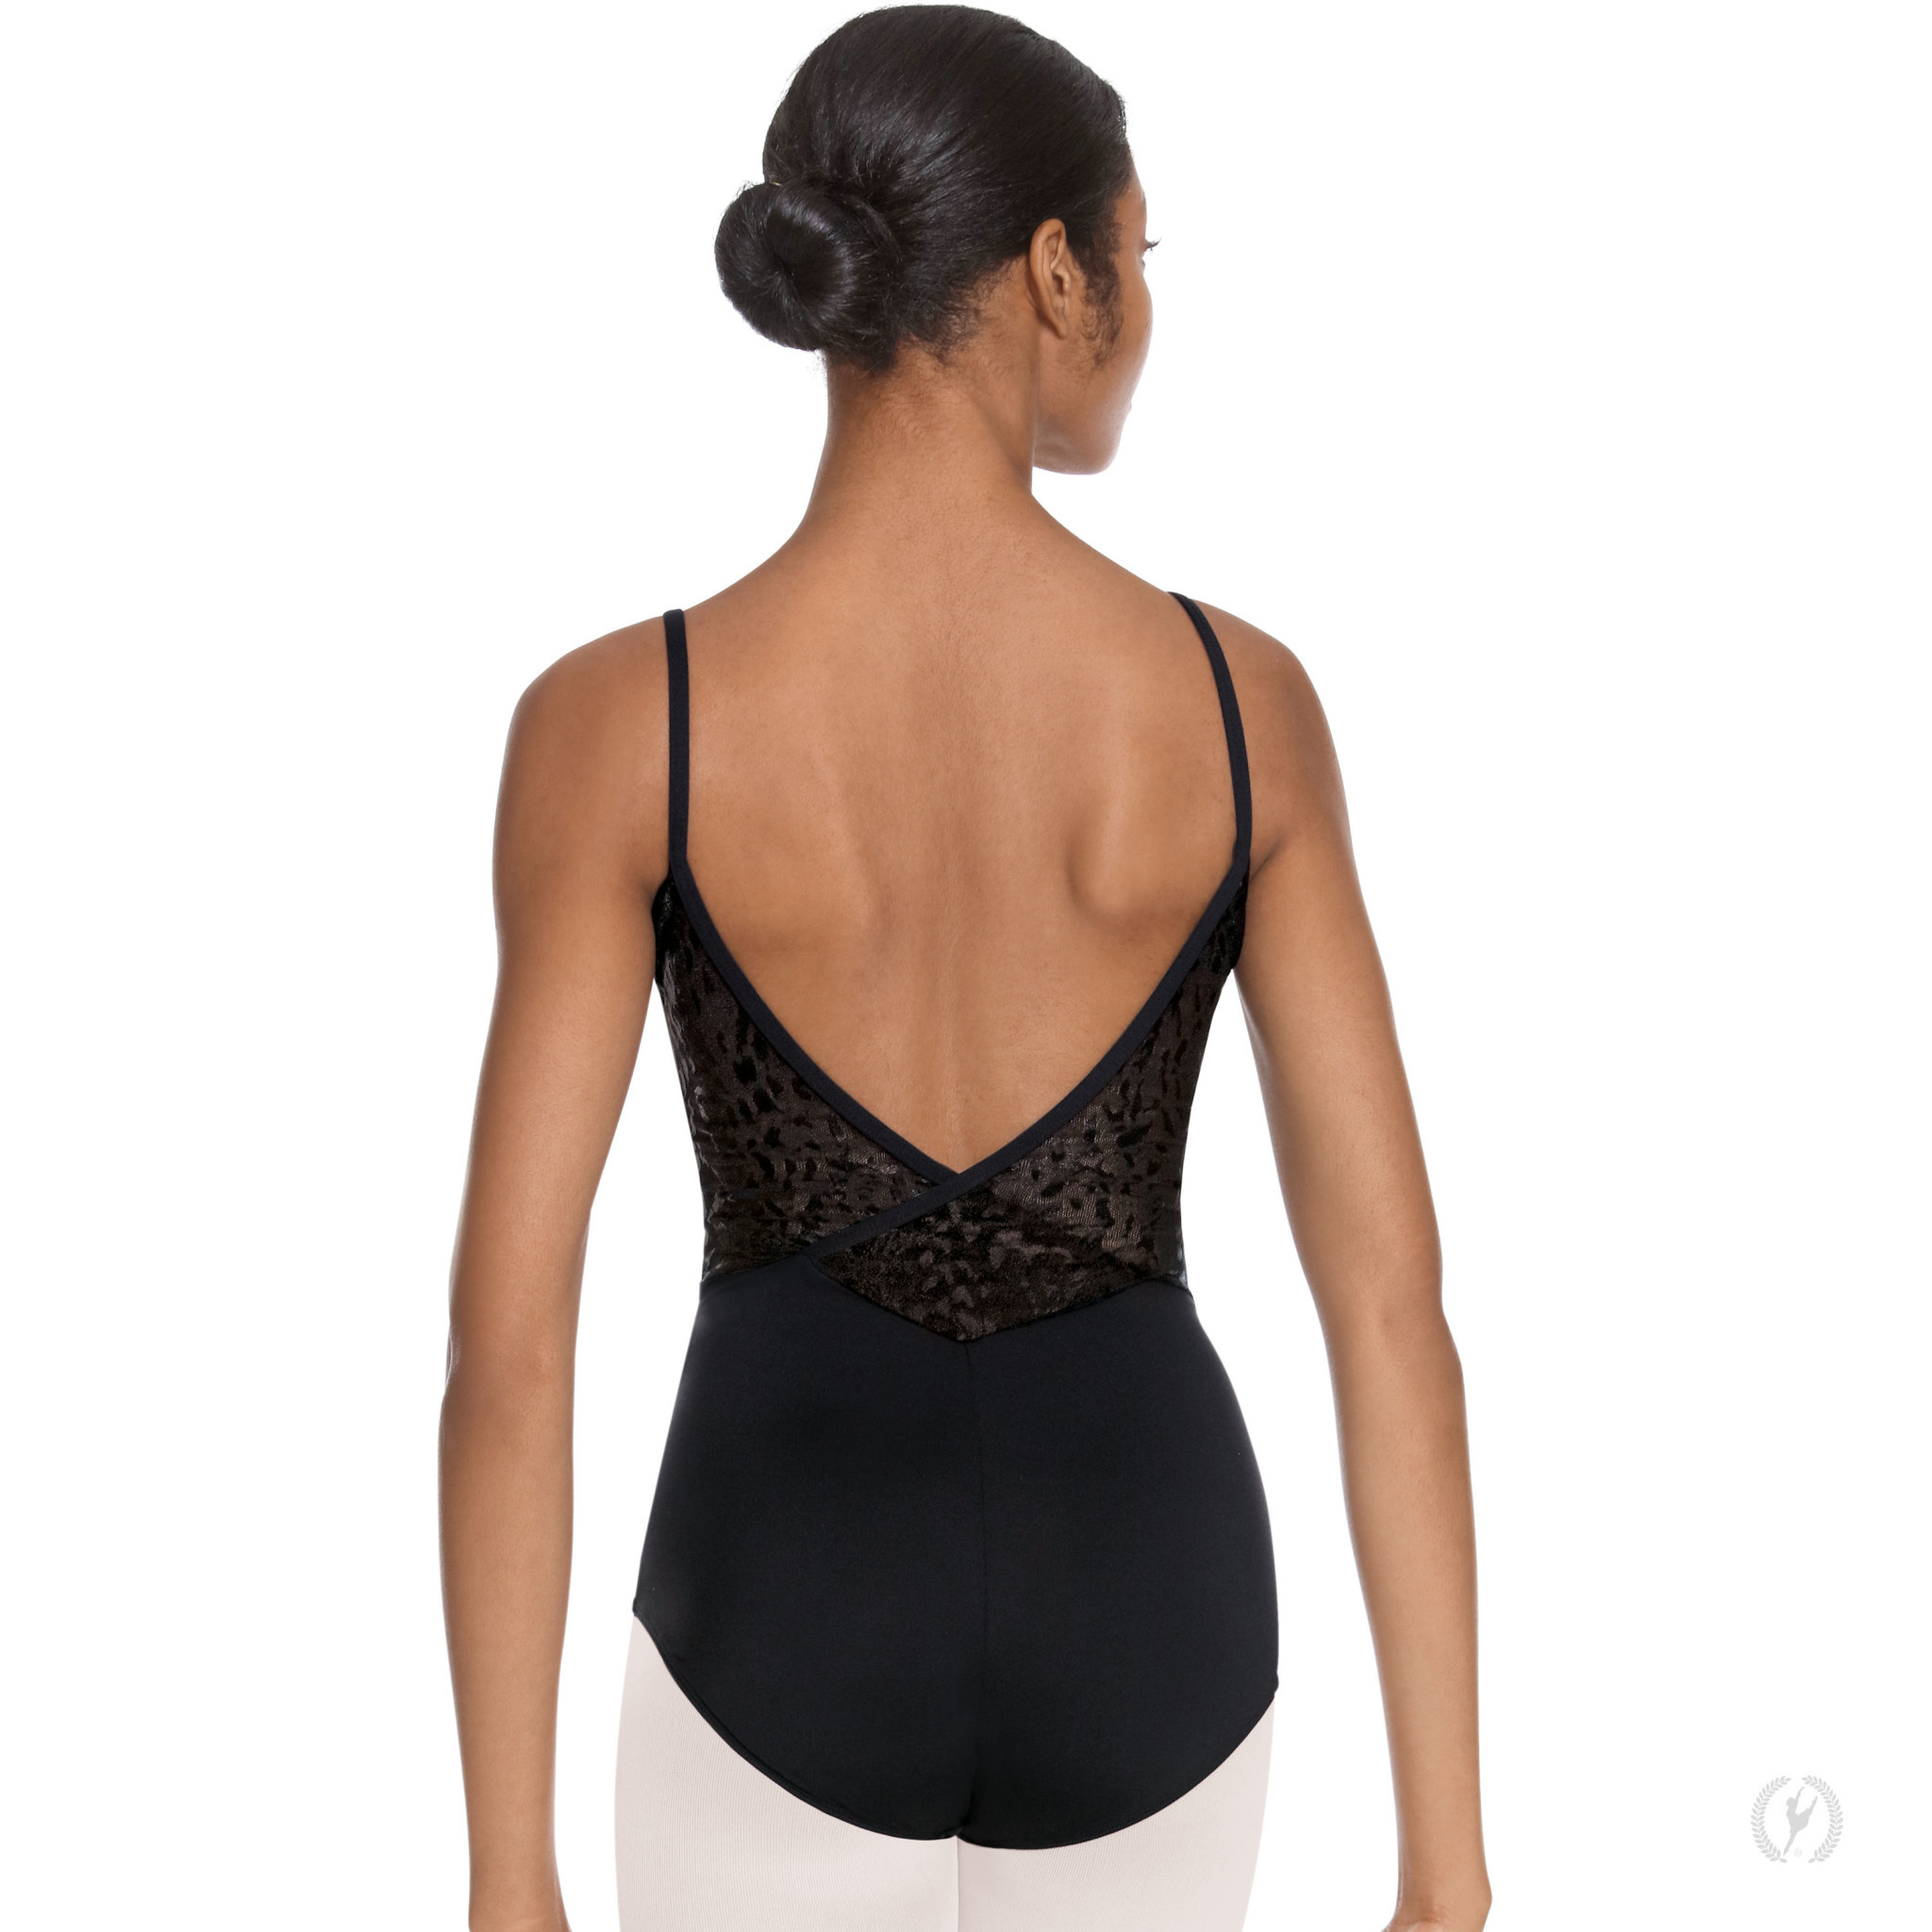 Eurotard 78781 Impression Wrap Back Leotard